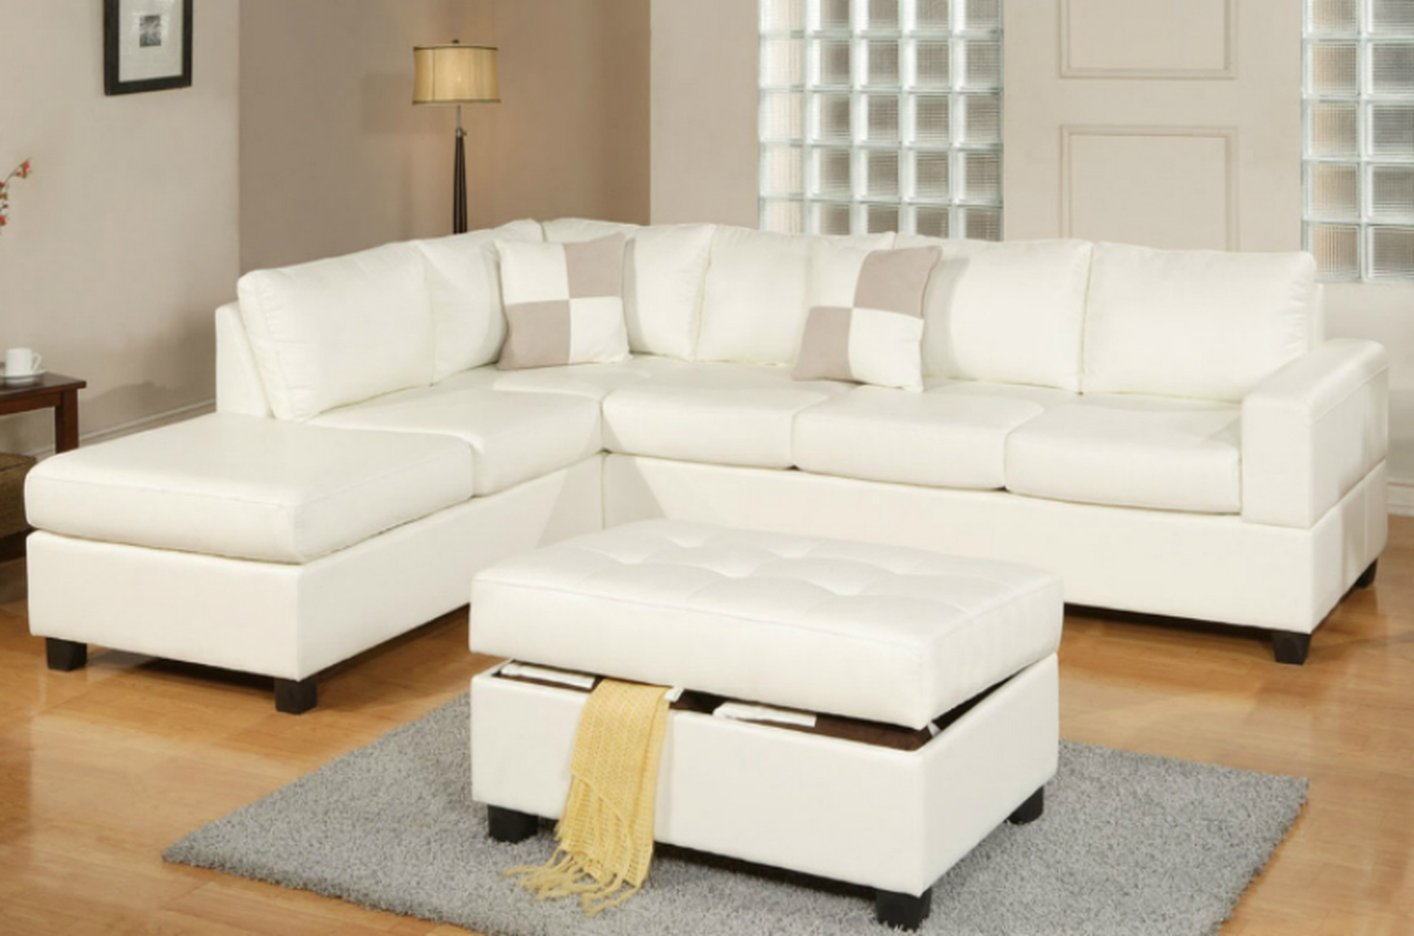 Poundex April F7354 White Leather Sectional Sofa And